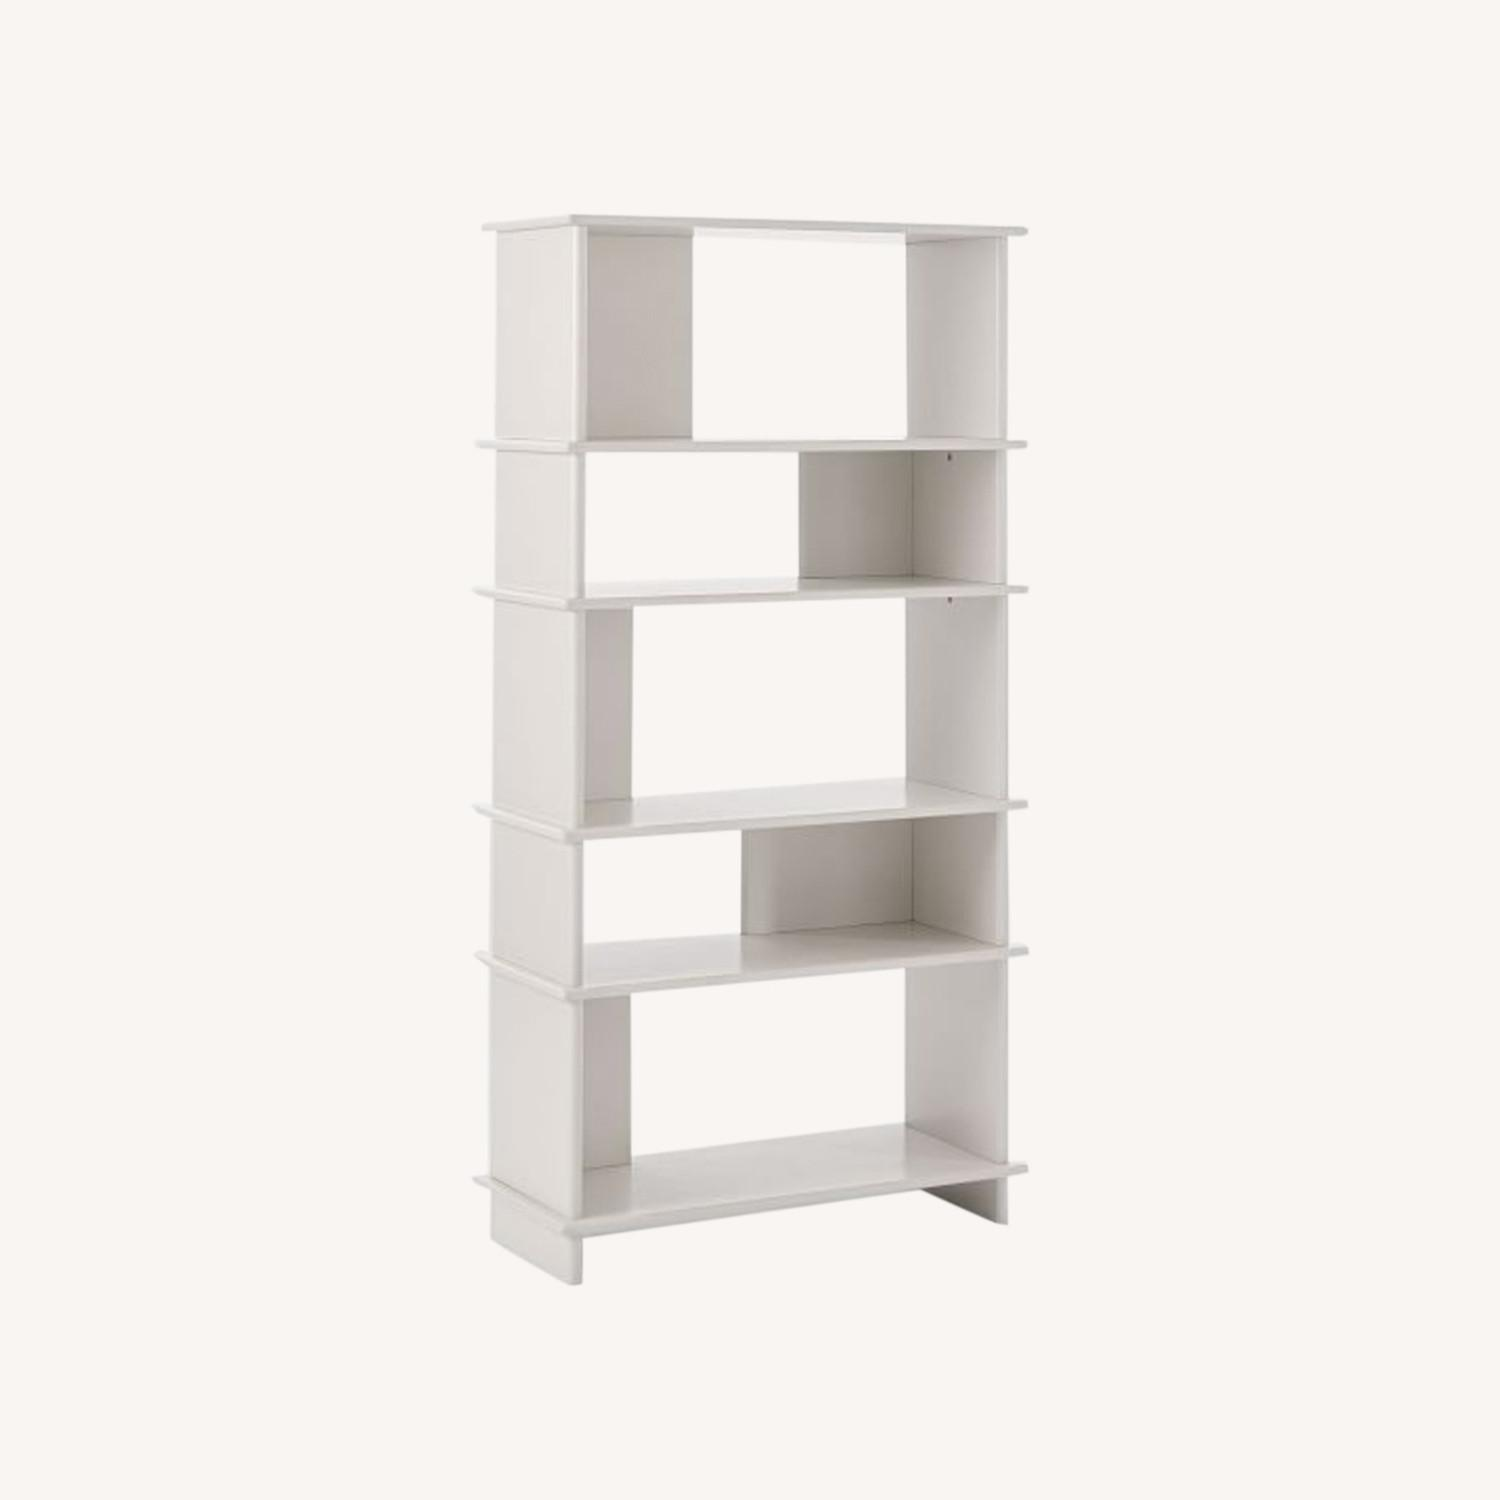 West Elm Kaira Wide Bookcase - Oyster - image-0